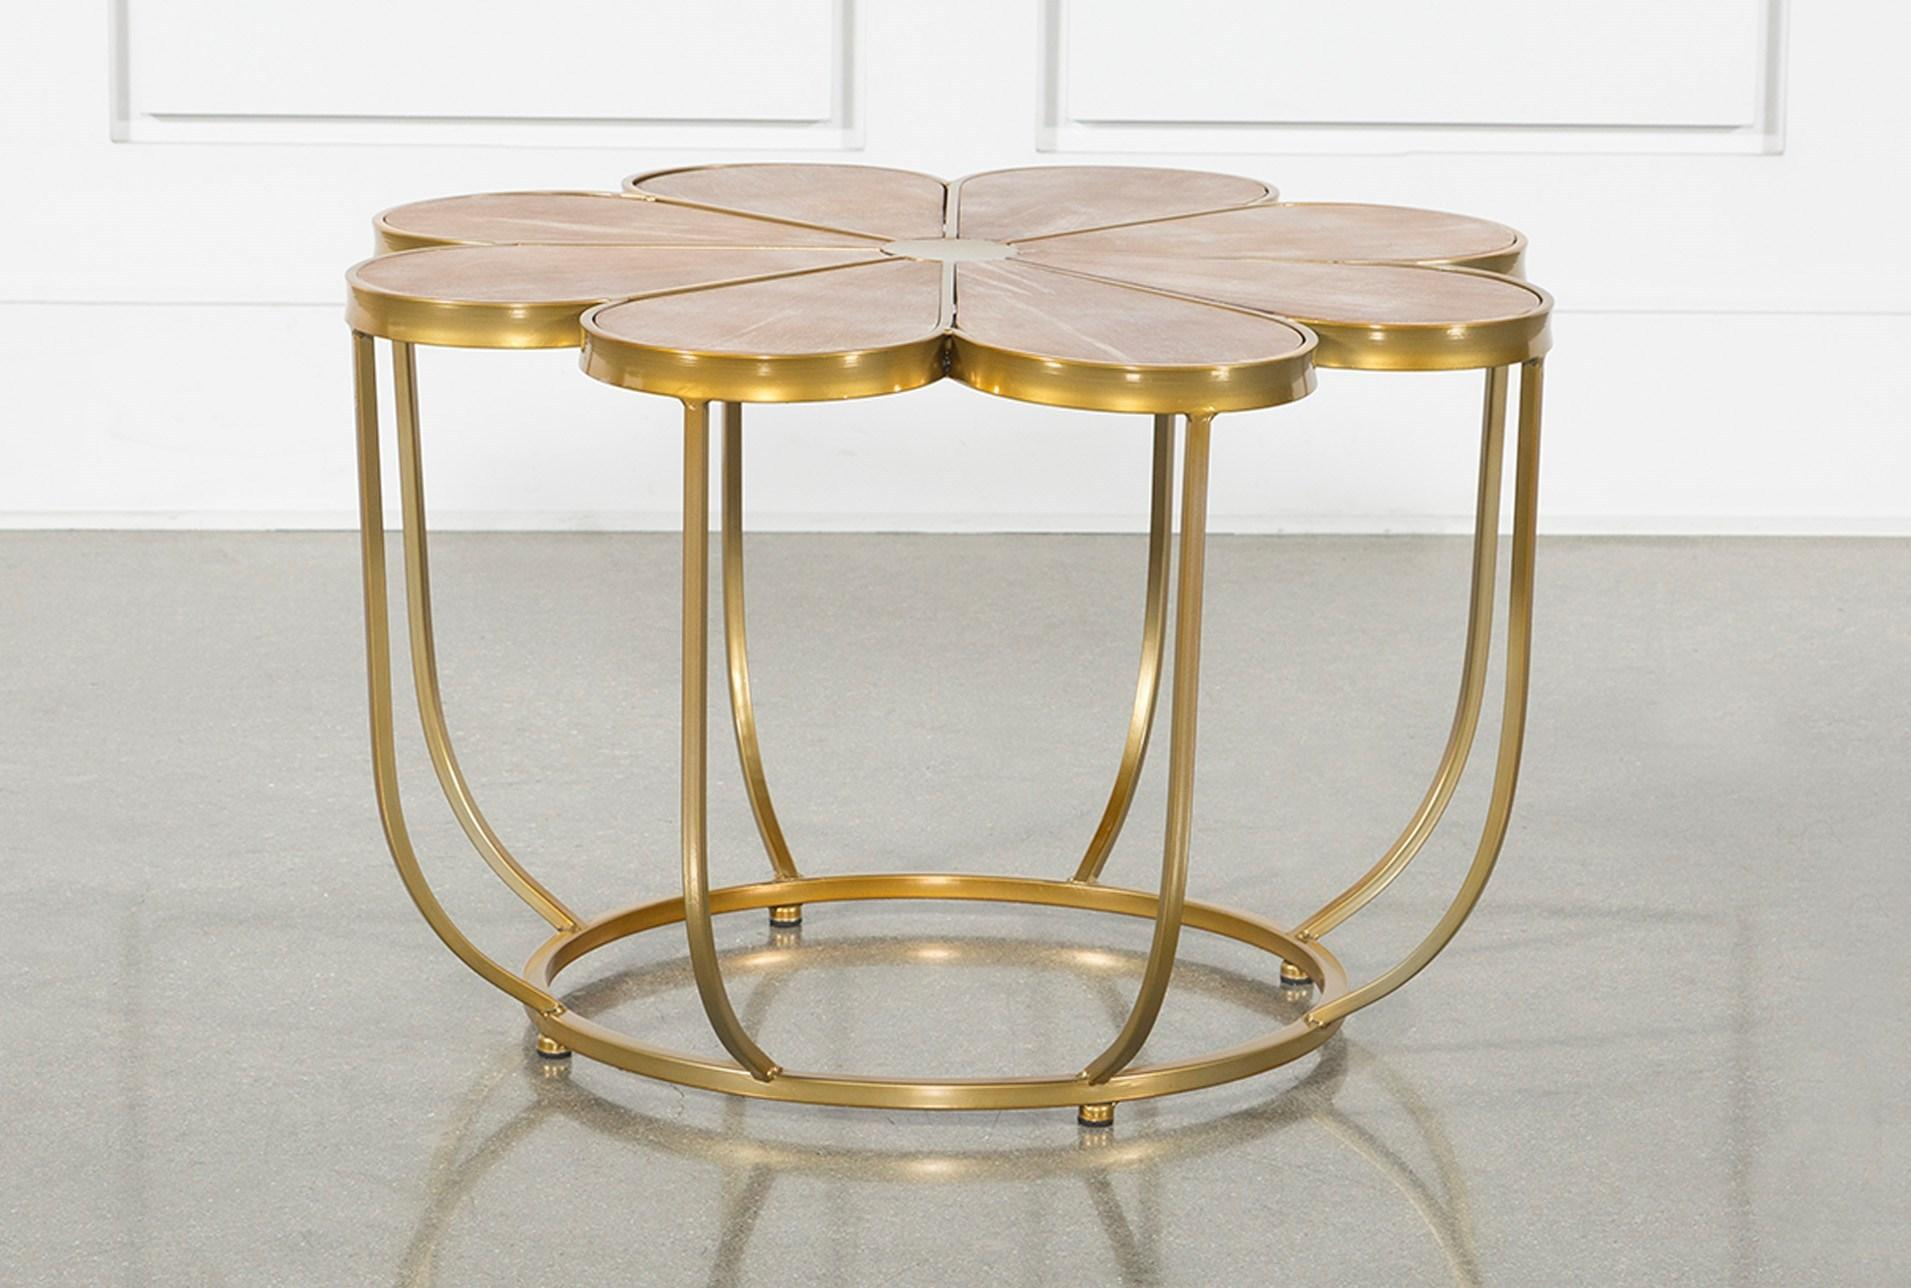 margarita accent table living spaces brown metal signature tables qty has been successfully your cart small white console hampton bay spring haven outdoor patio furniture sets